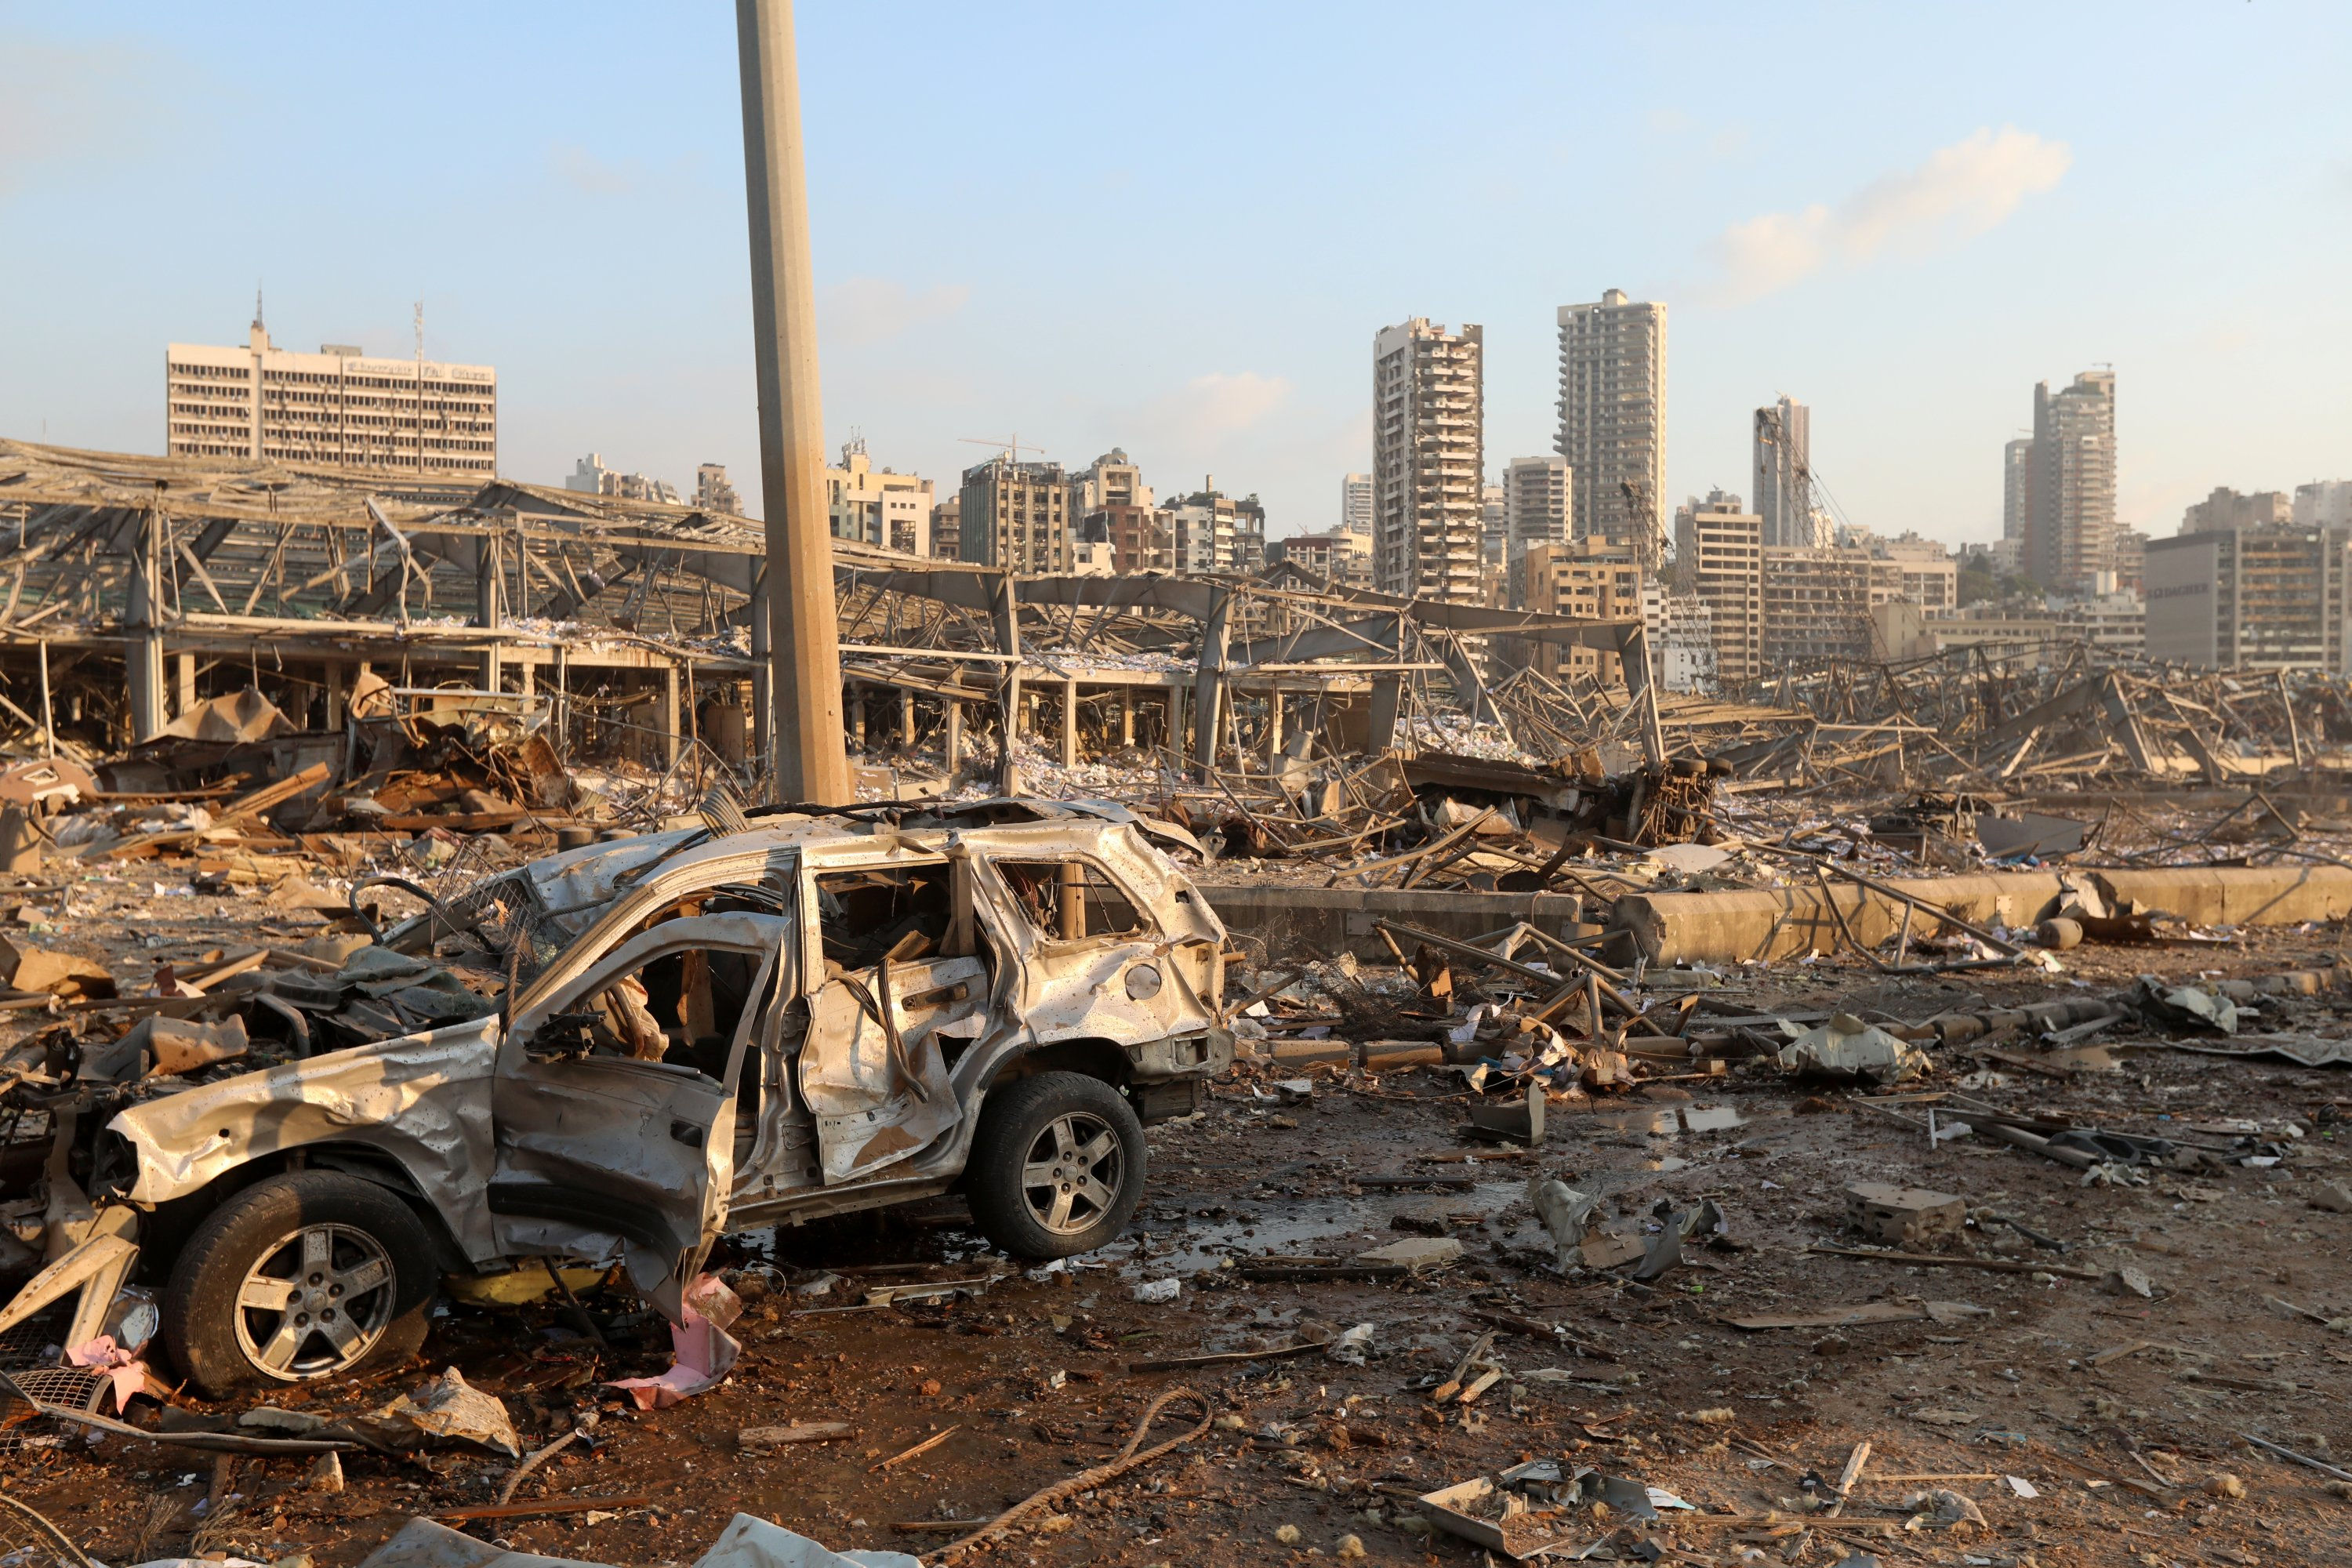 A damaged vehicle is seen at the site of an explosion in Beirut, Lebanon August 4, 2020. (Reuters Photo)